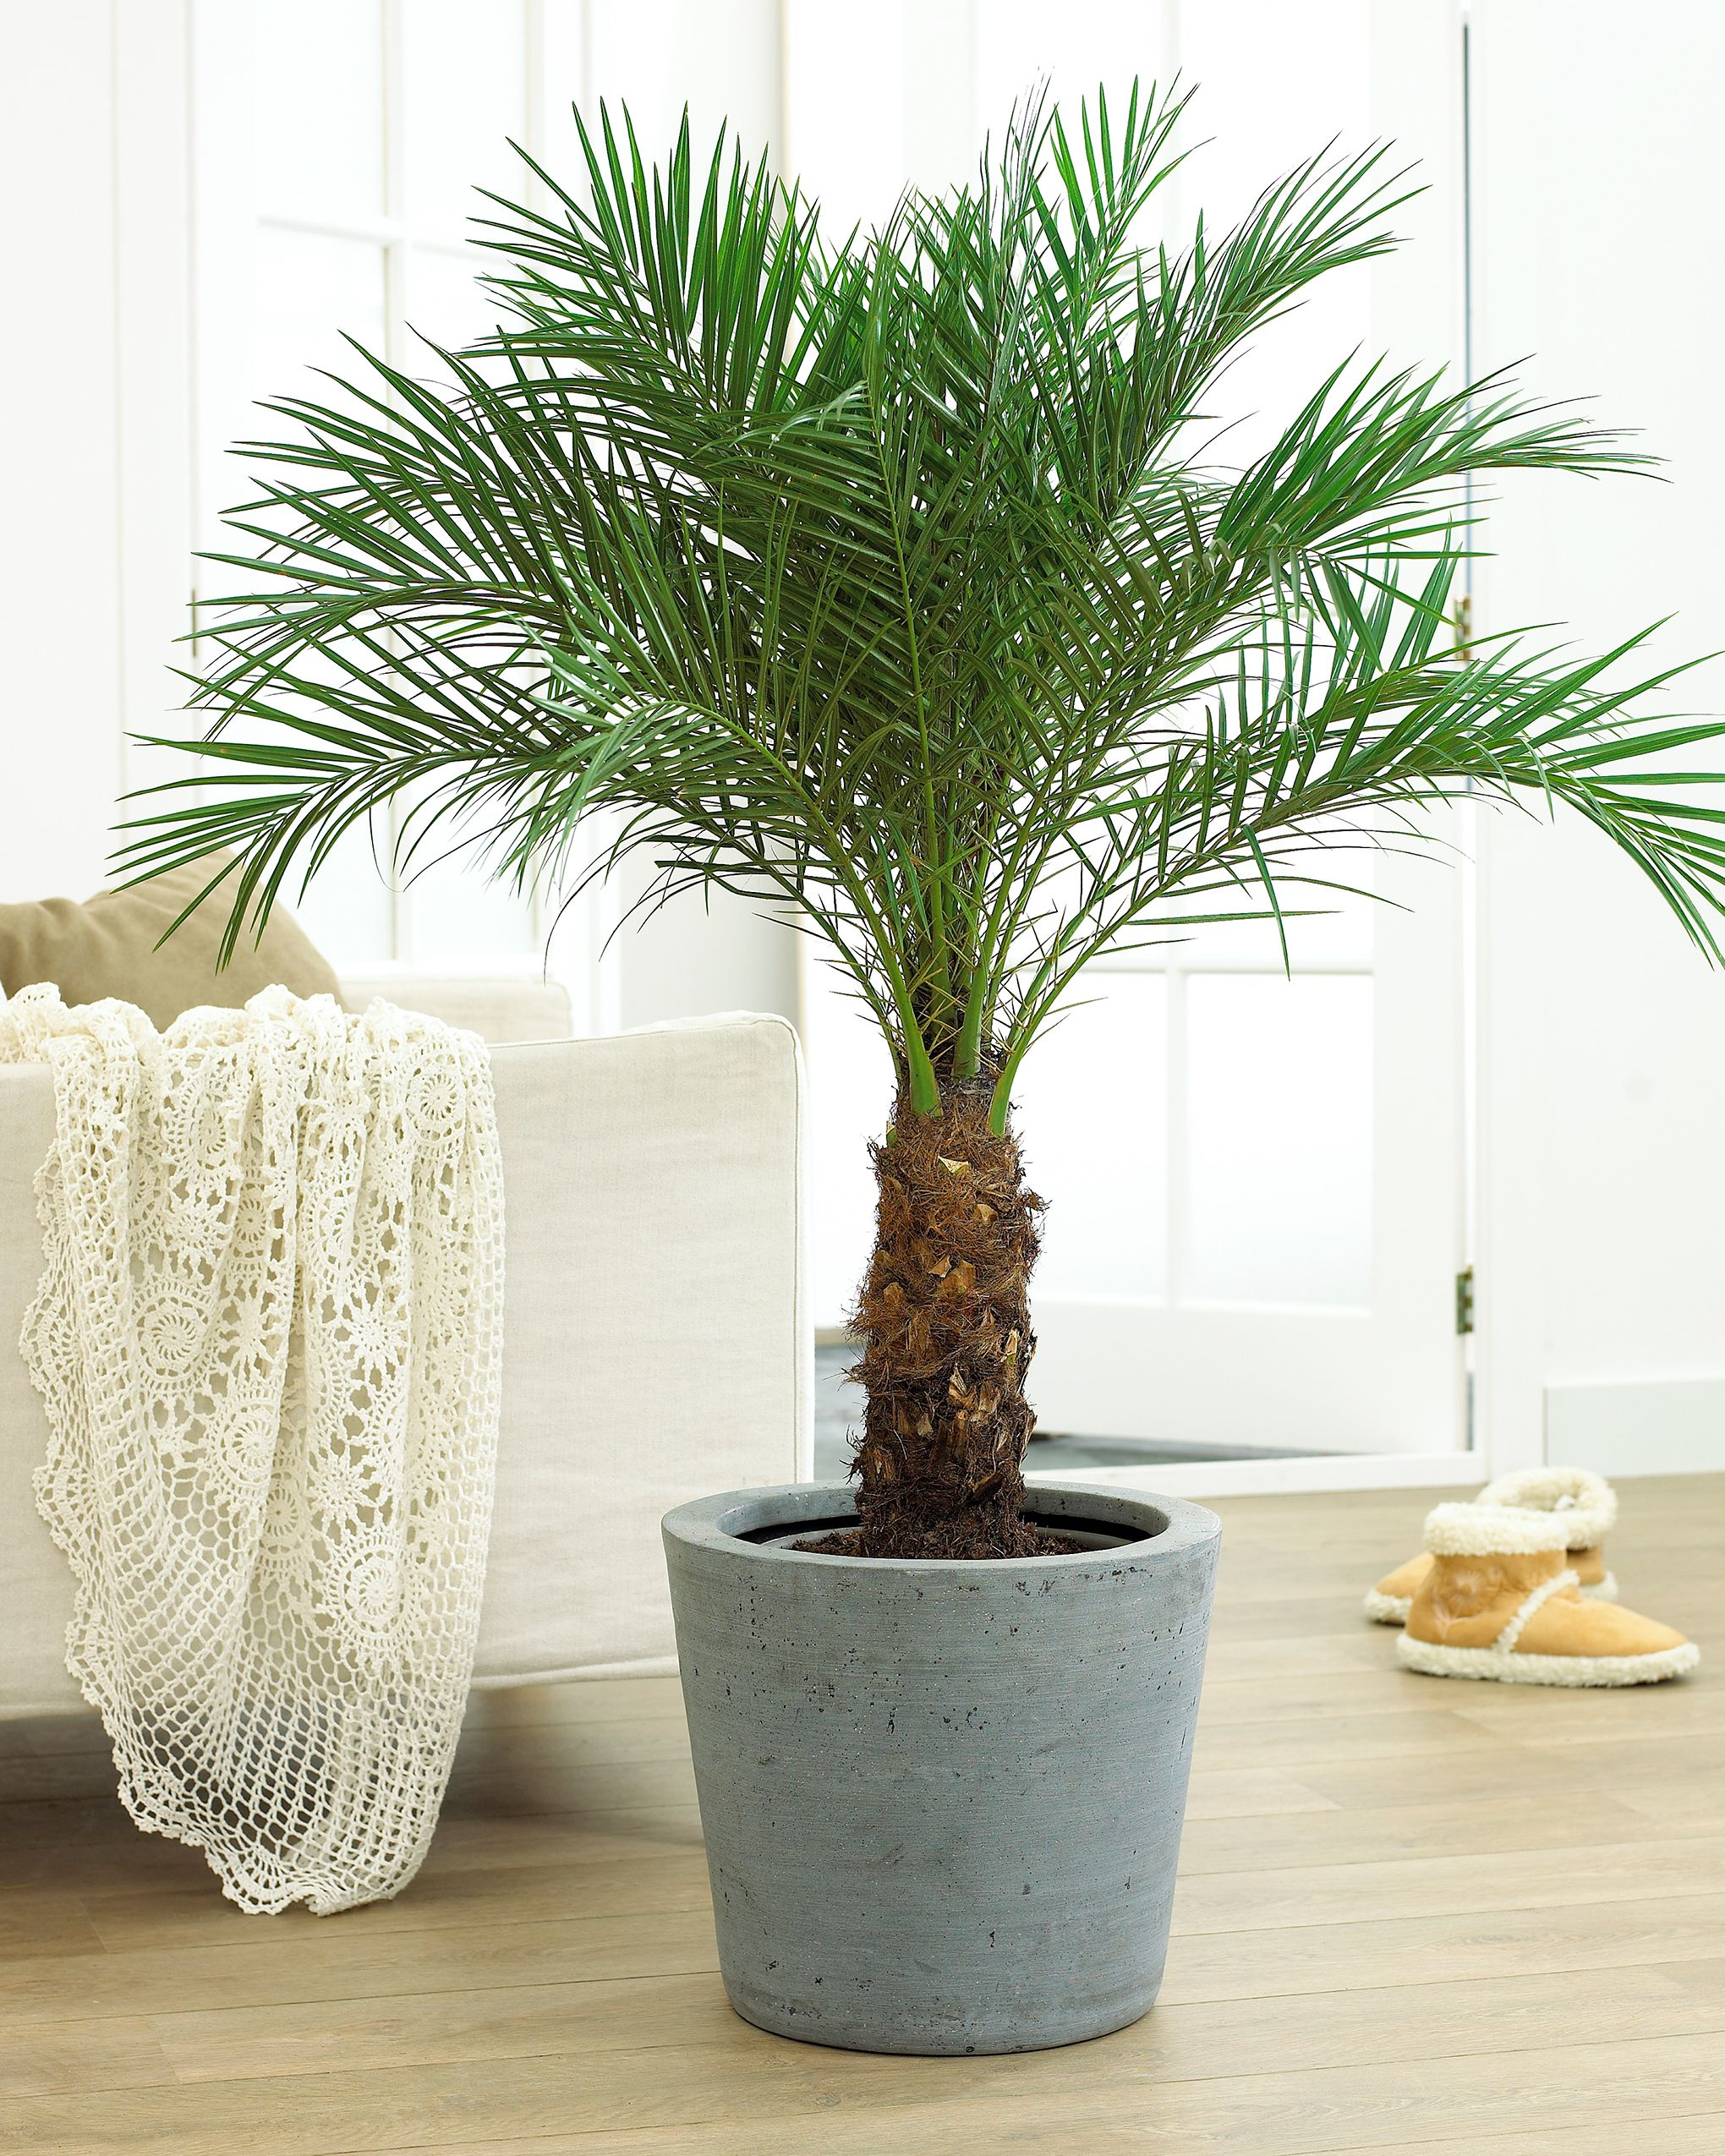 Superior A Beautiful Container Palm That Will Flourish Indoors And Out.